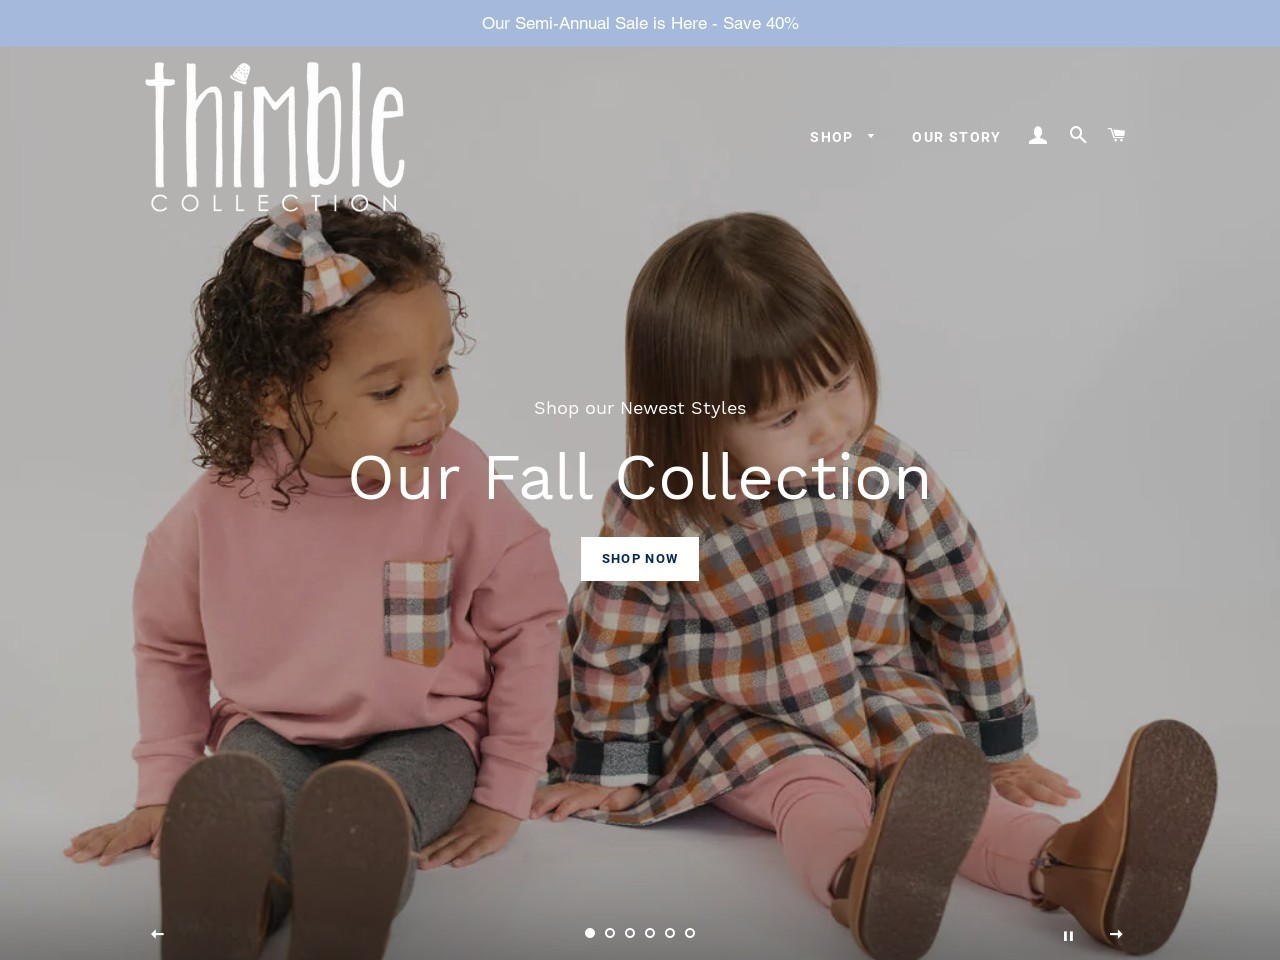 thimblecollection.com